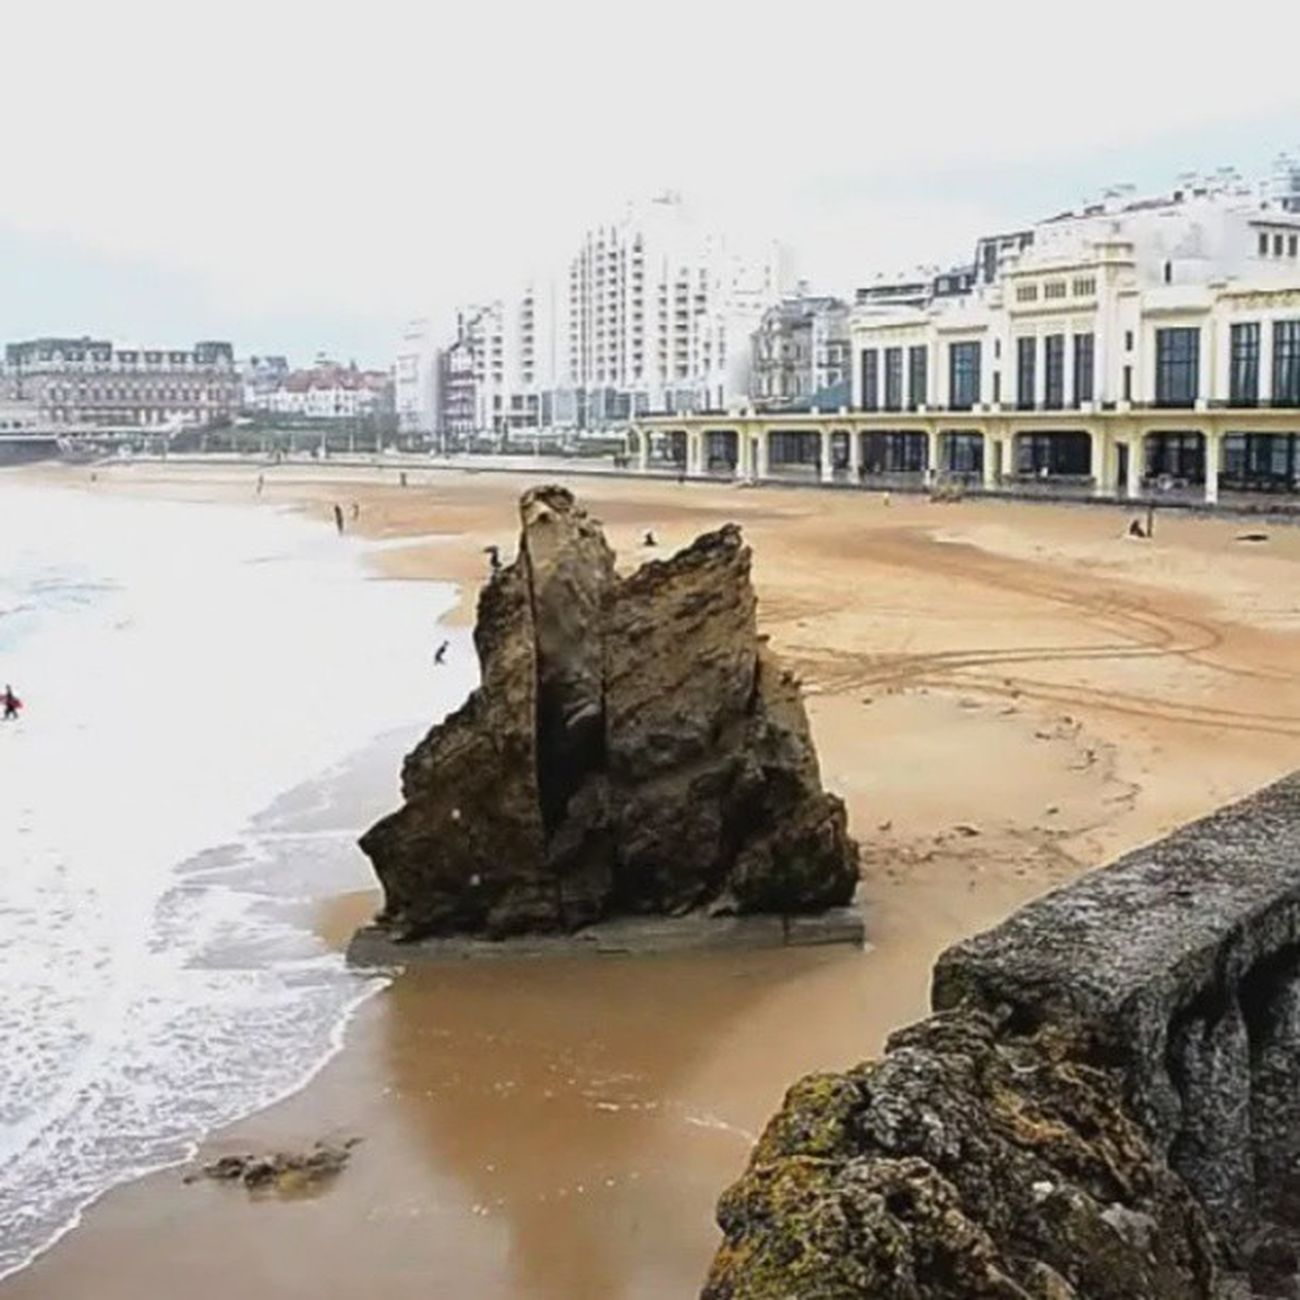 Souvenir de #biarritz Myfirstvideo Videogramoftheday Biarritz Insta_pick_video Videoclip Gi_video Wec_ig Hubvideo Videoinstagram Global_views_videoshot Instagramvideo Jj_video Videogram Ministory Igvideo Clubsocial_video Instavideo Instagoodvideo Igersfrancevideo _vidstagram Worldvideos Igersbiarritz Insta_globalvideo Tribegram_video Perfectvideo Videooftheday